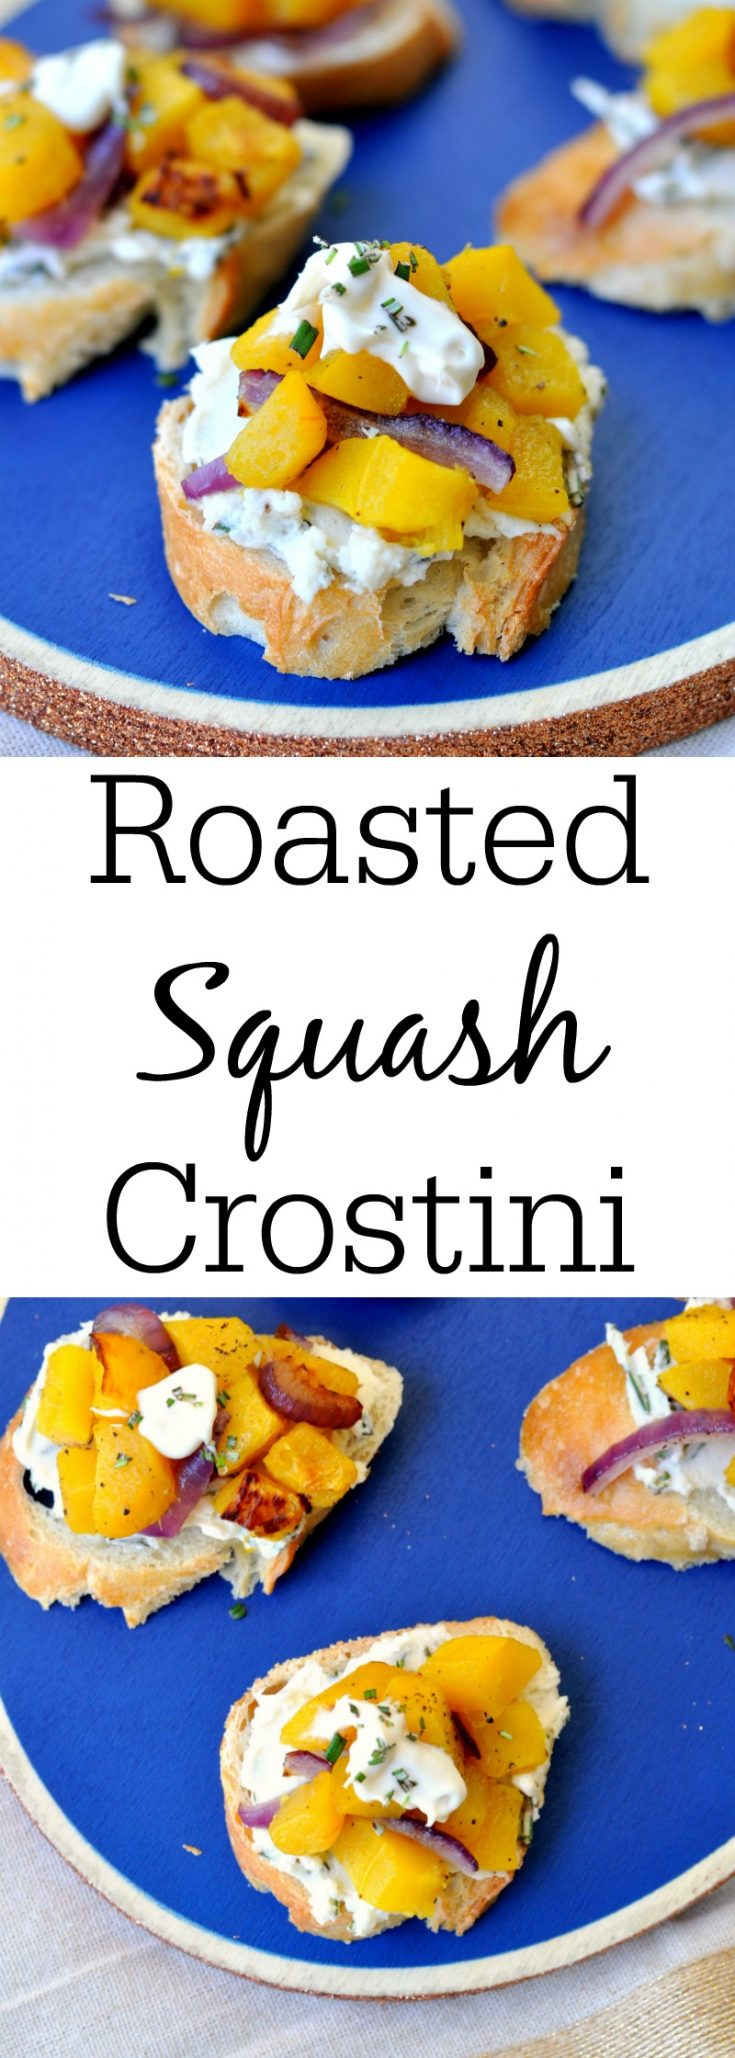 Roasted Squash Crostini - The perfect fall appetizer!